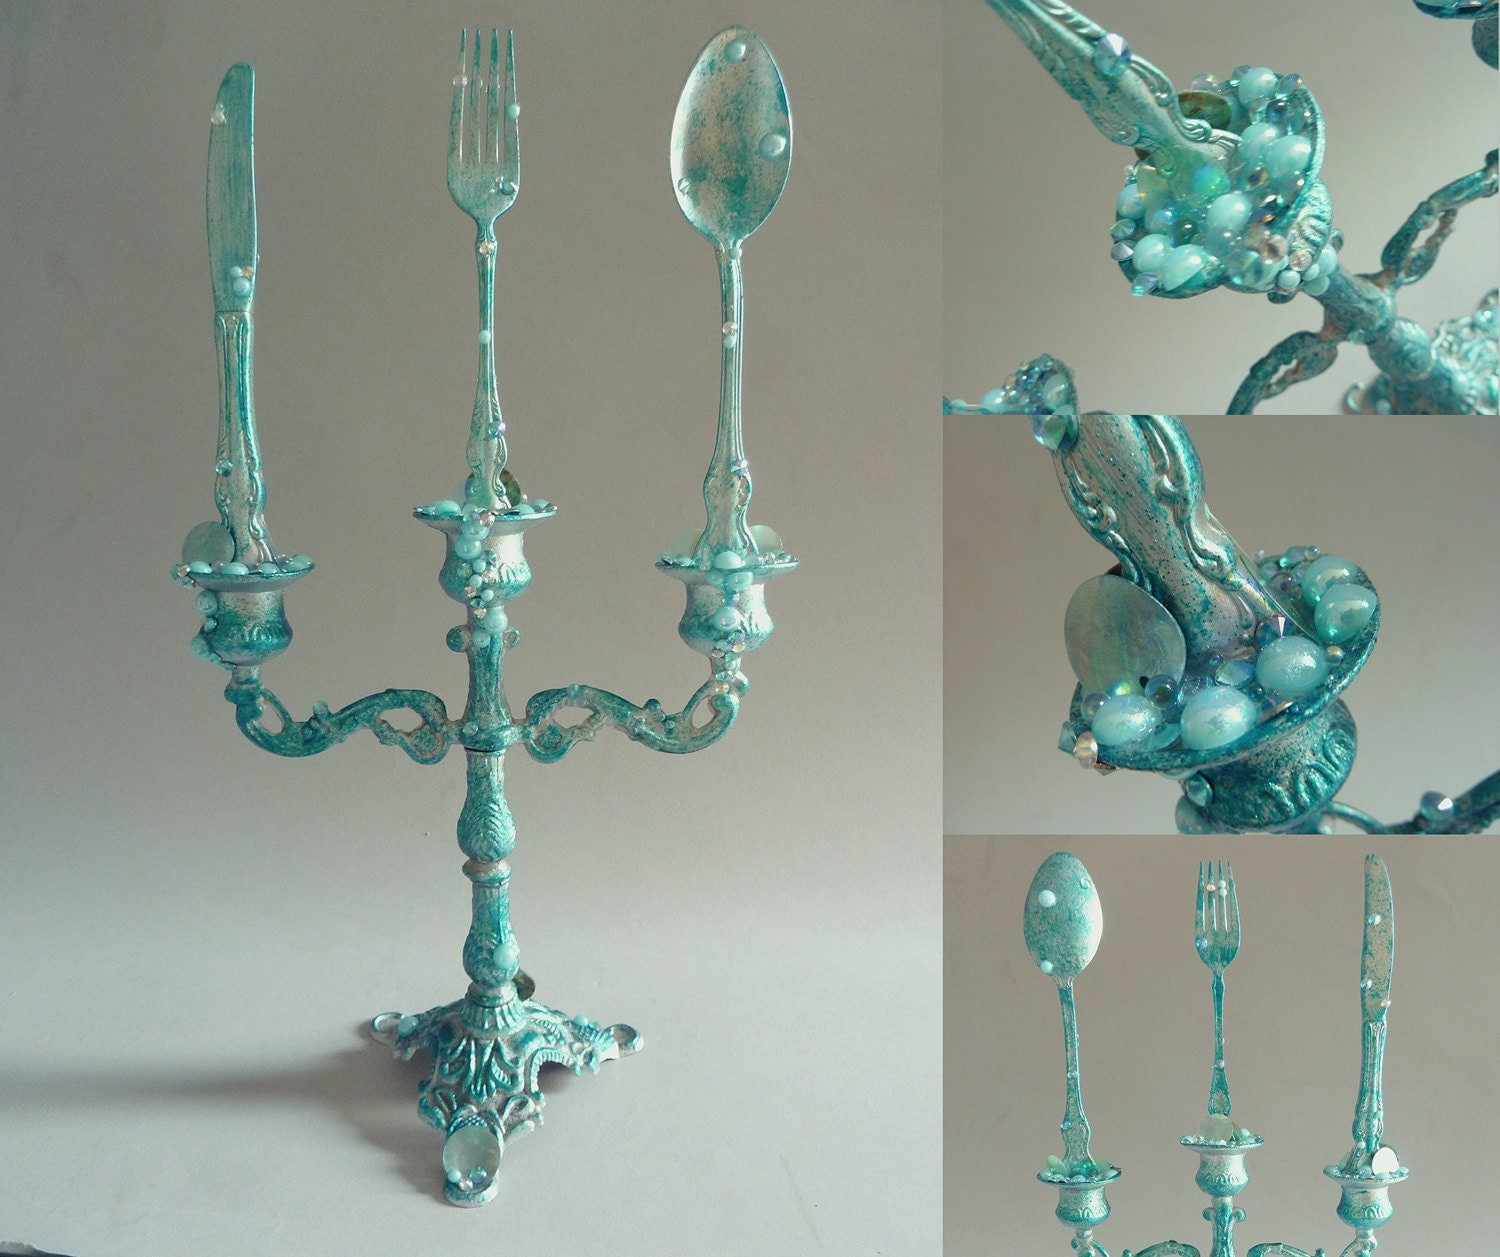 The little mermaid candelabra with dinglehopper